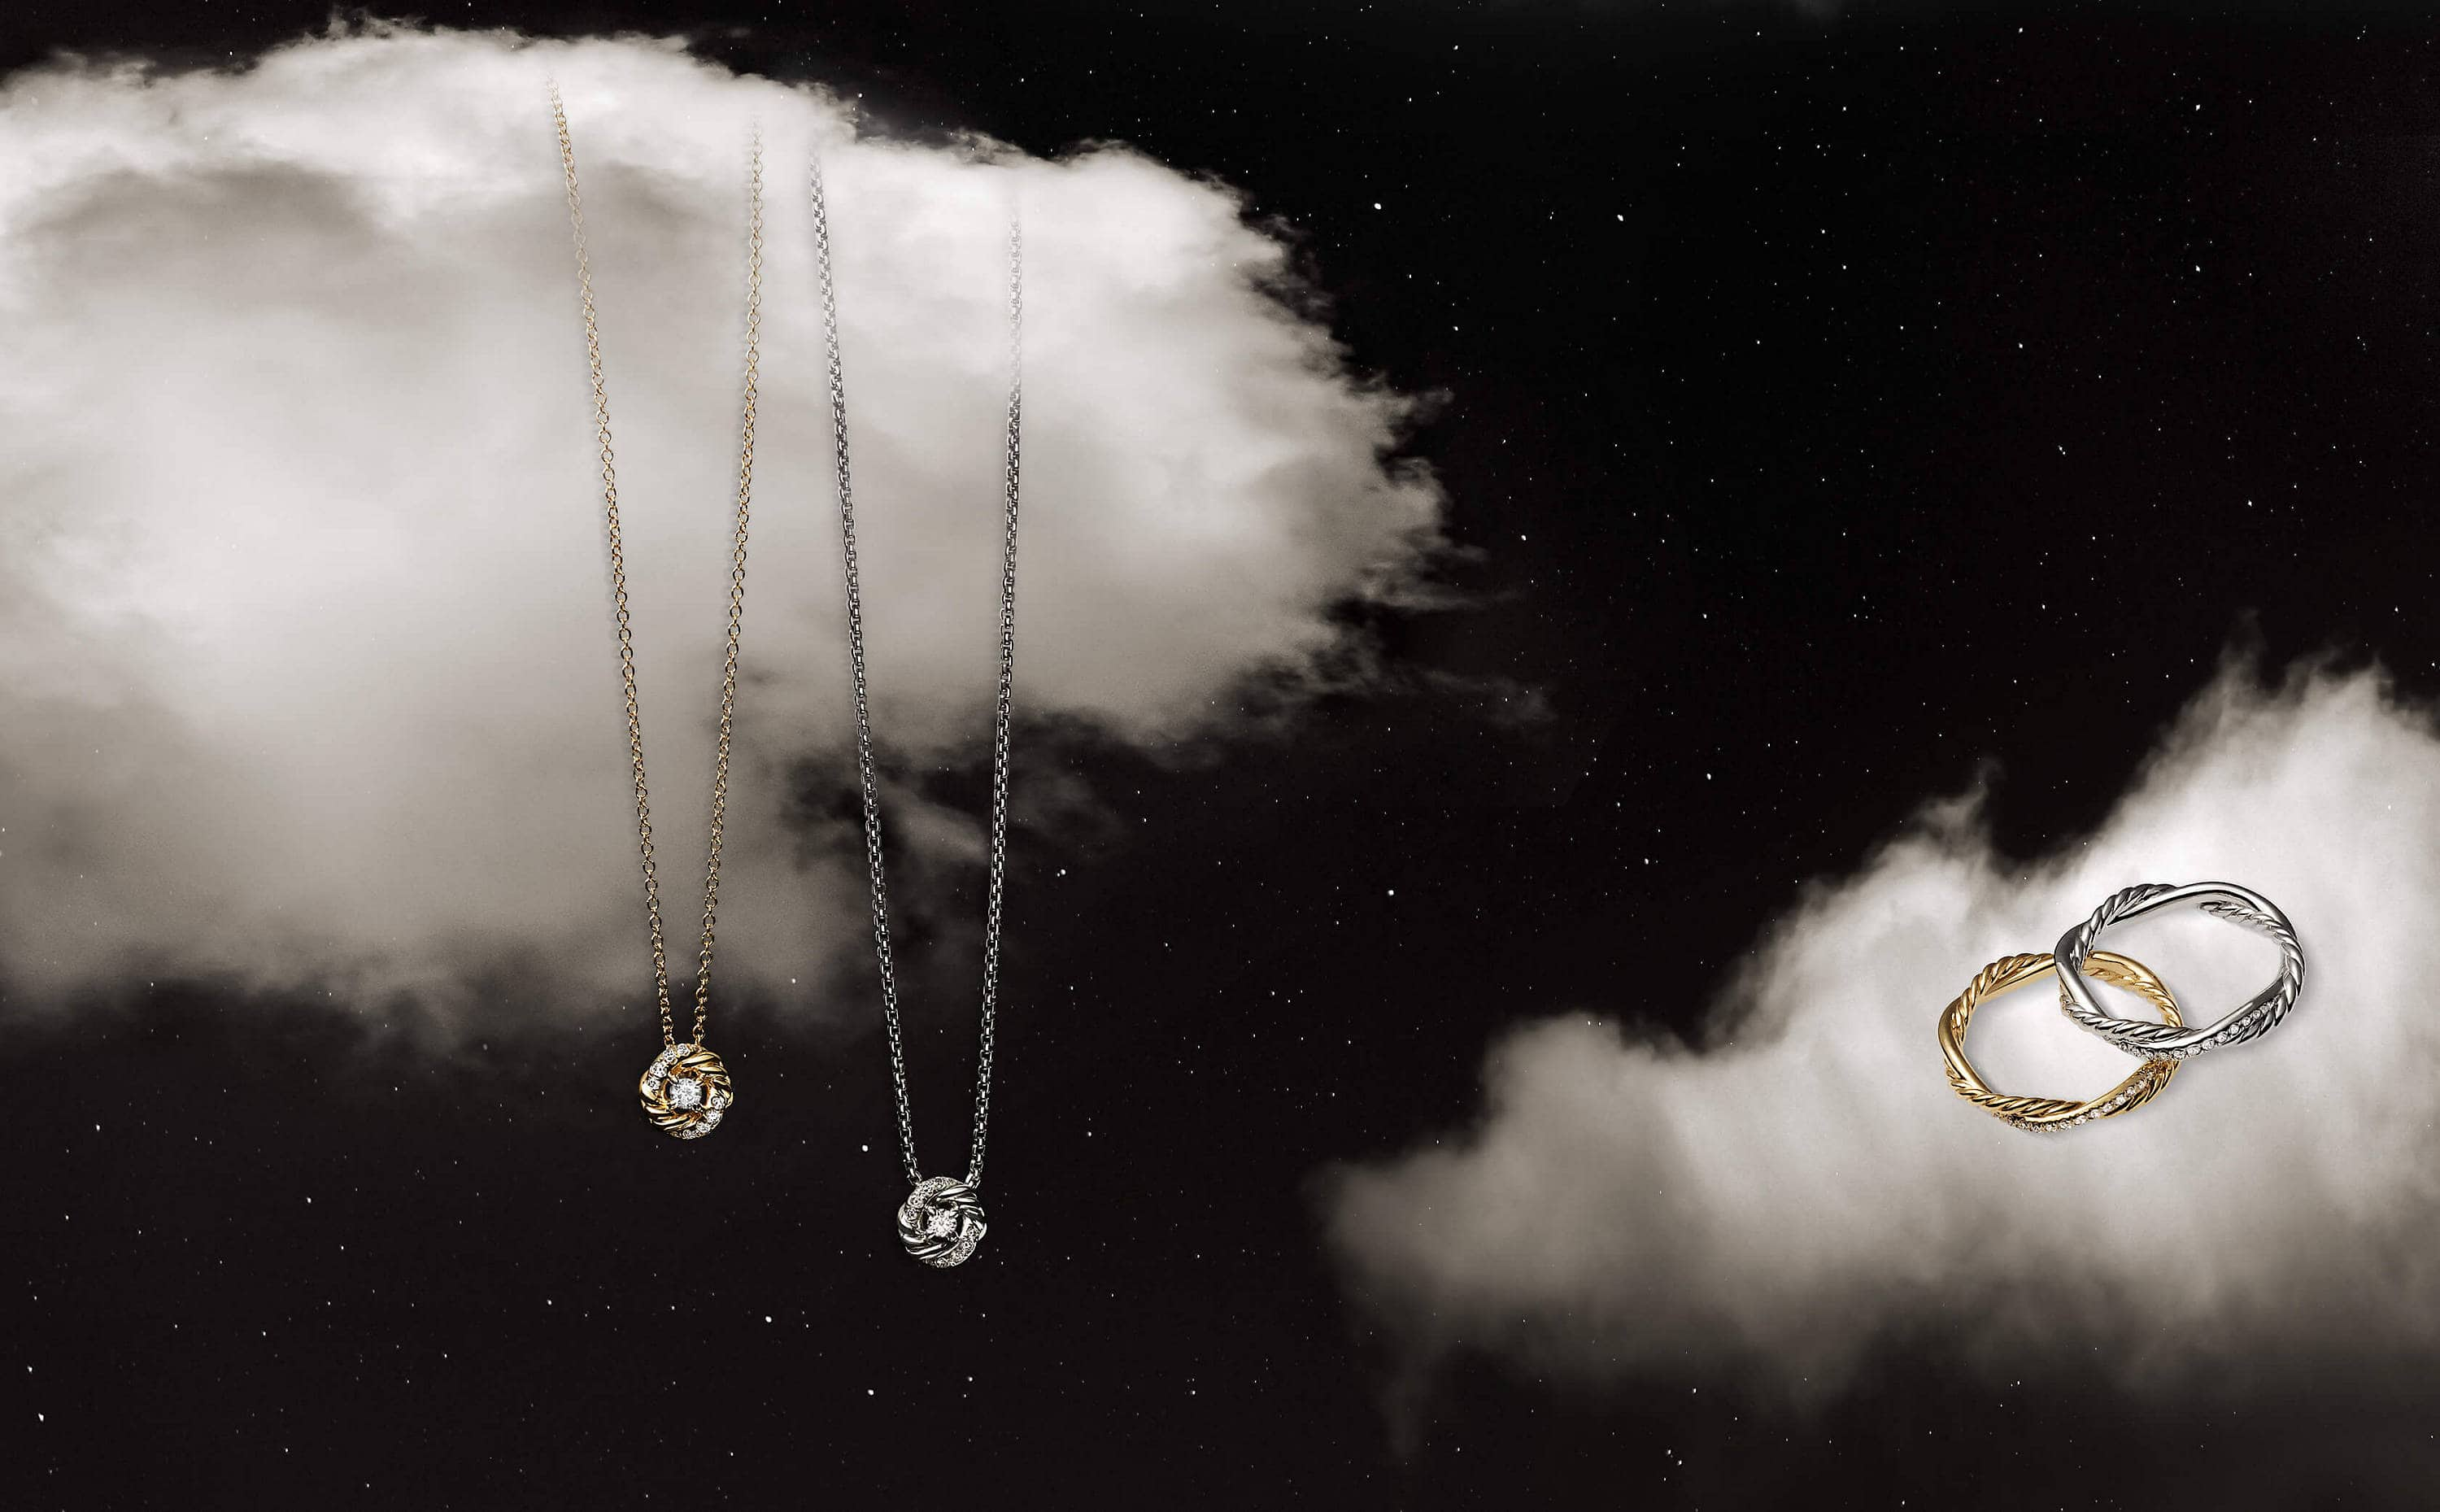 A color photo shows two pendant necklaces floating in front of a could next to a pair of band rings on a cloud from the David Yurman women's Infinity Collection in front of a starry night sky. The jewelry is crafted from strands of sterling silver or 18K yellow gold Cable entwined with pavé diamonds.